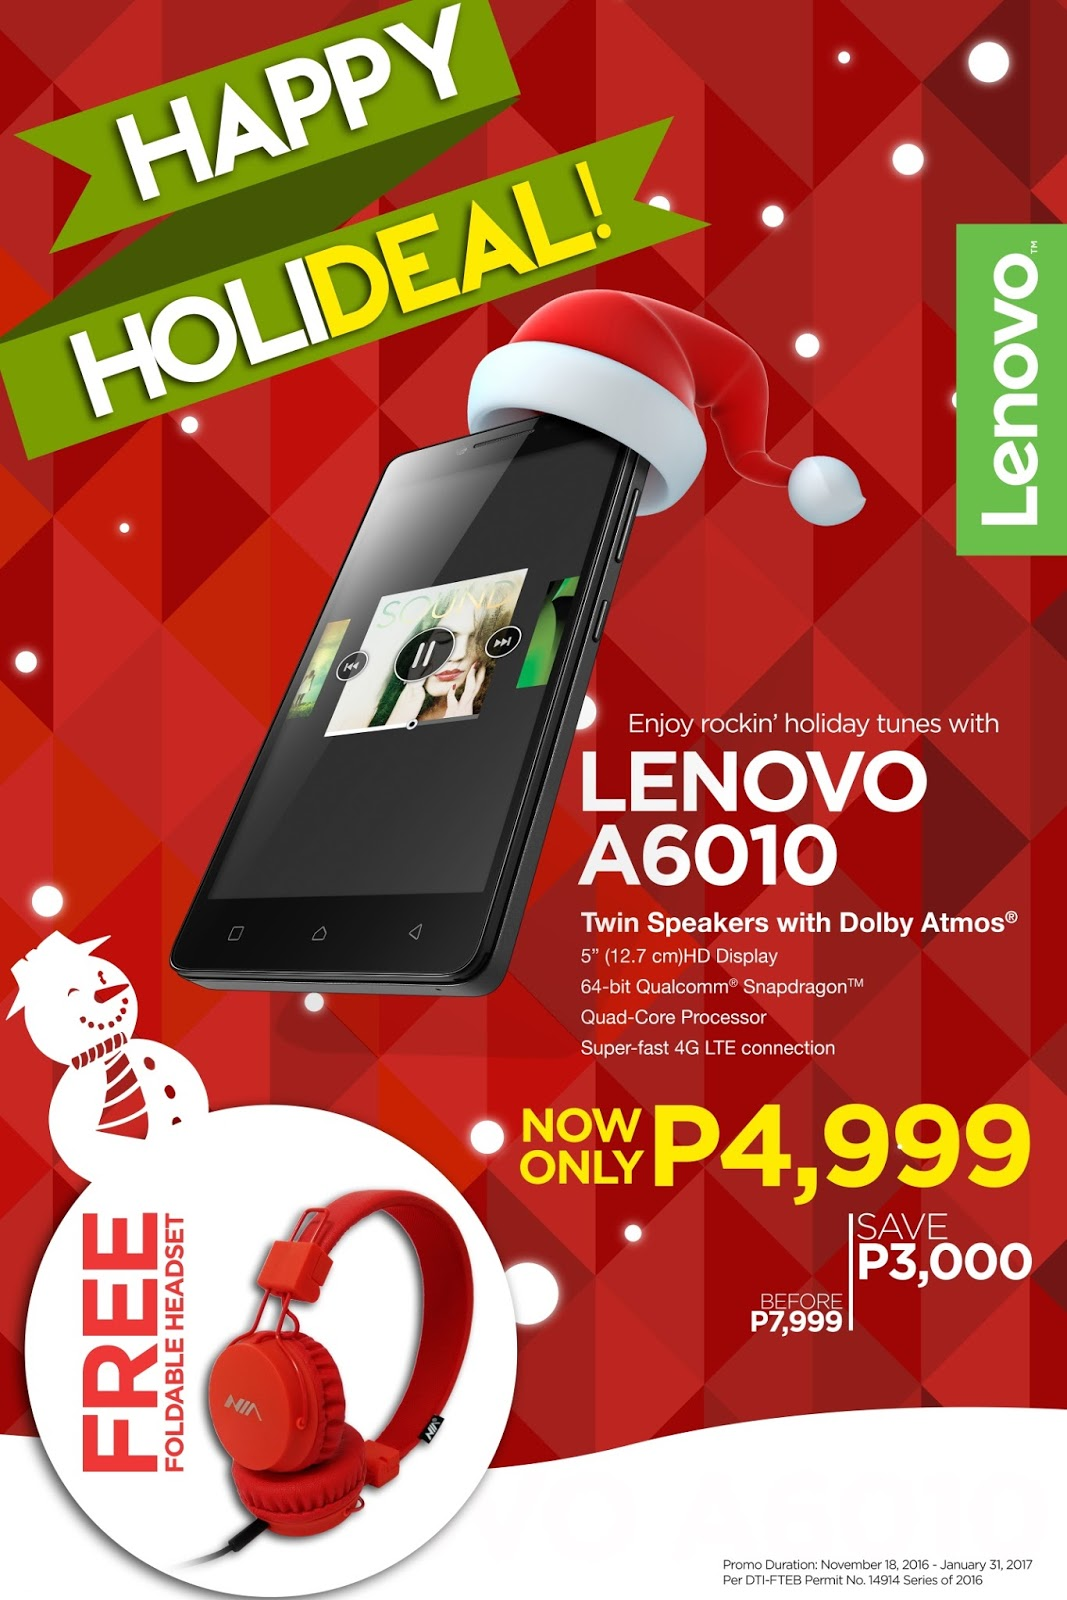 Lenovo Happy HoliDeal Promo